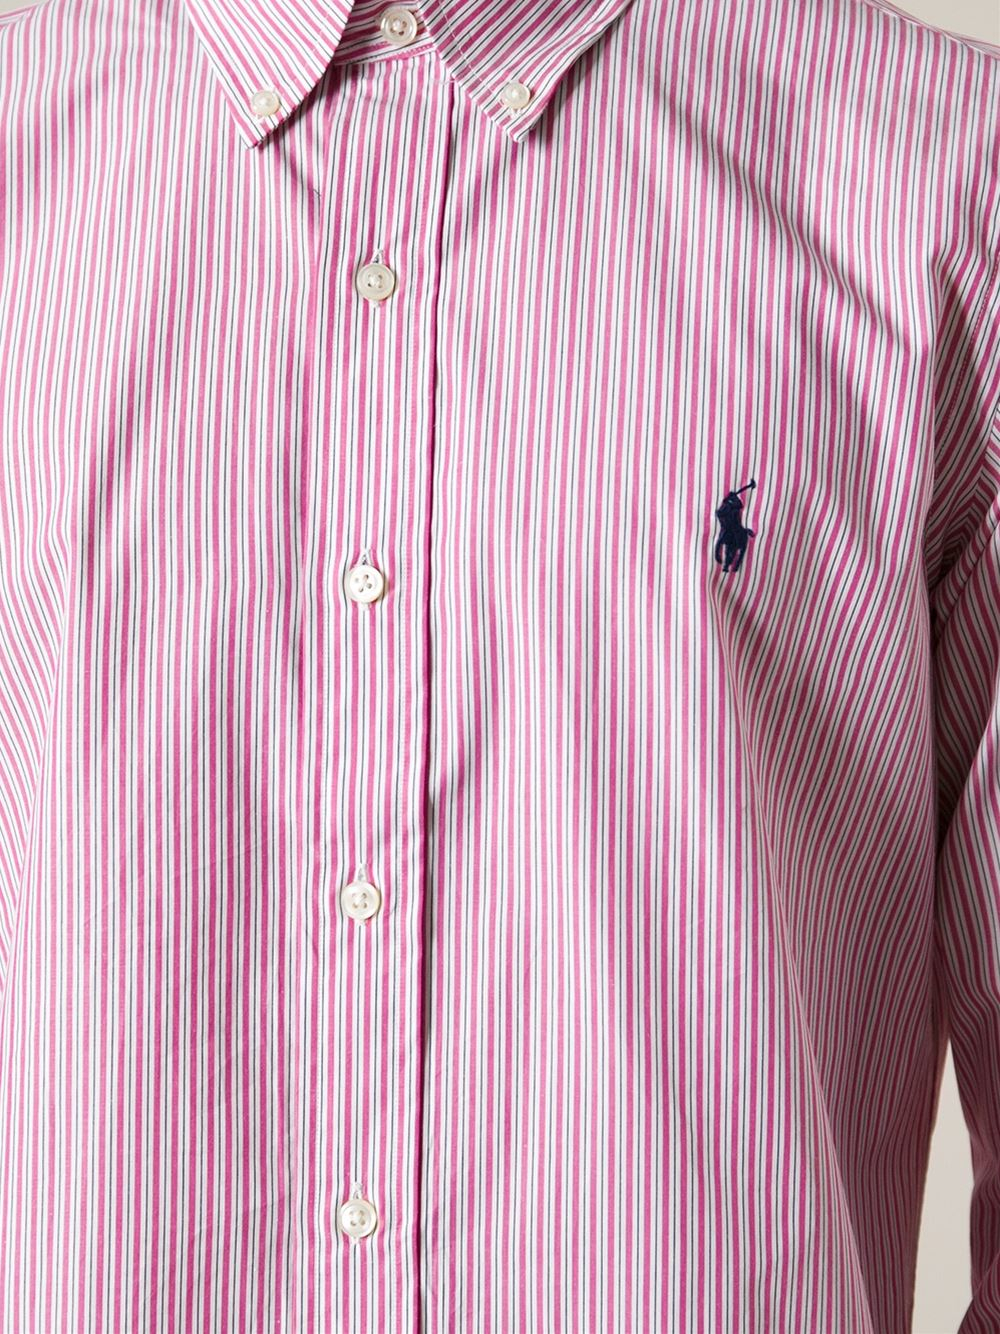 Lyst Polo Ralph Lauren Striped Shirt In Purple For Men